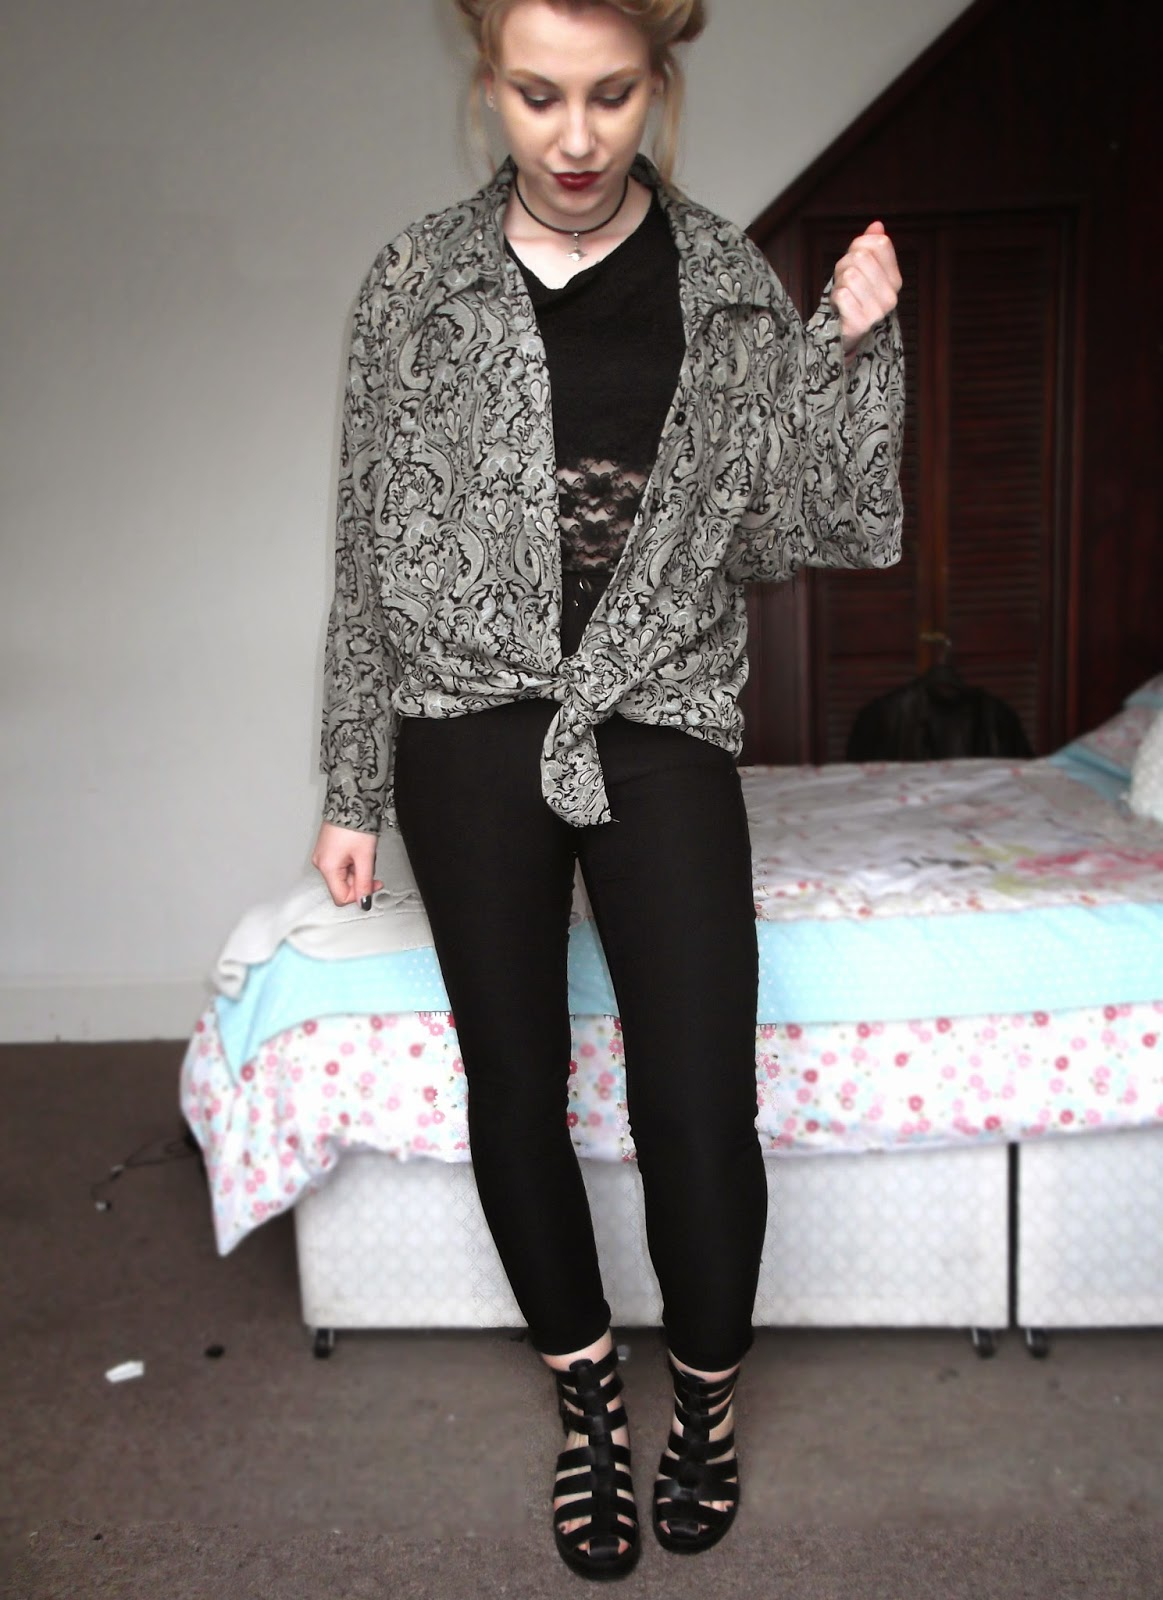 fashion, grunge, style, kimono, alternative